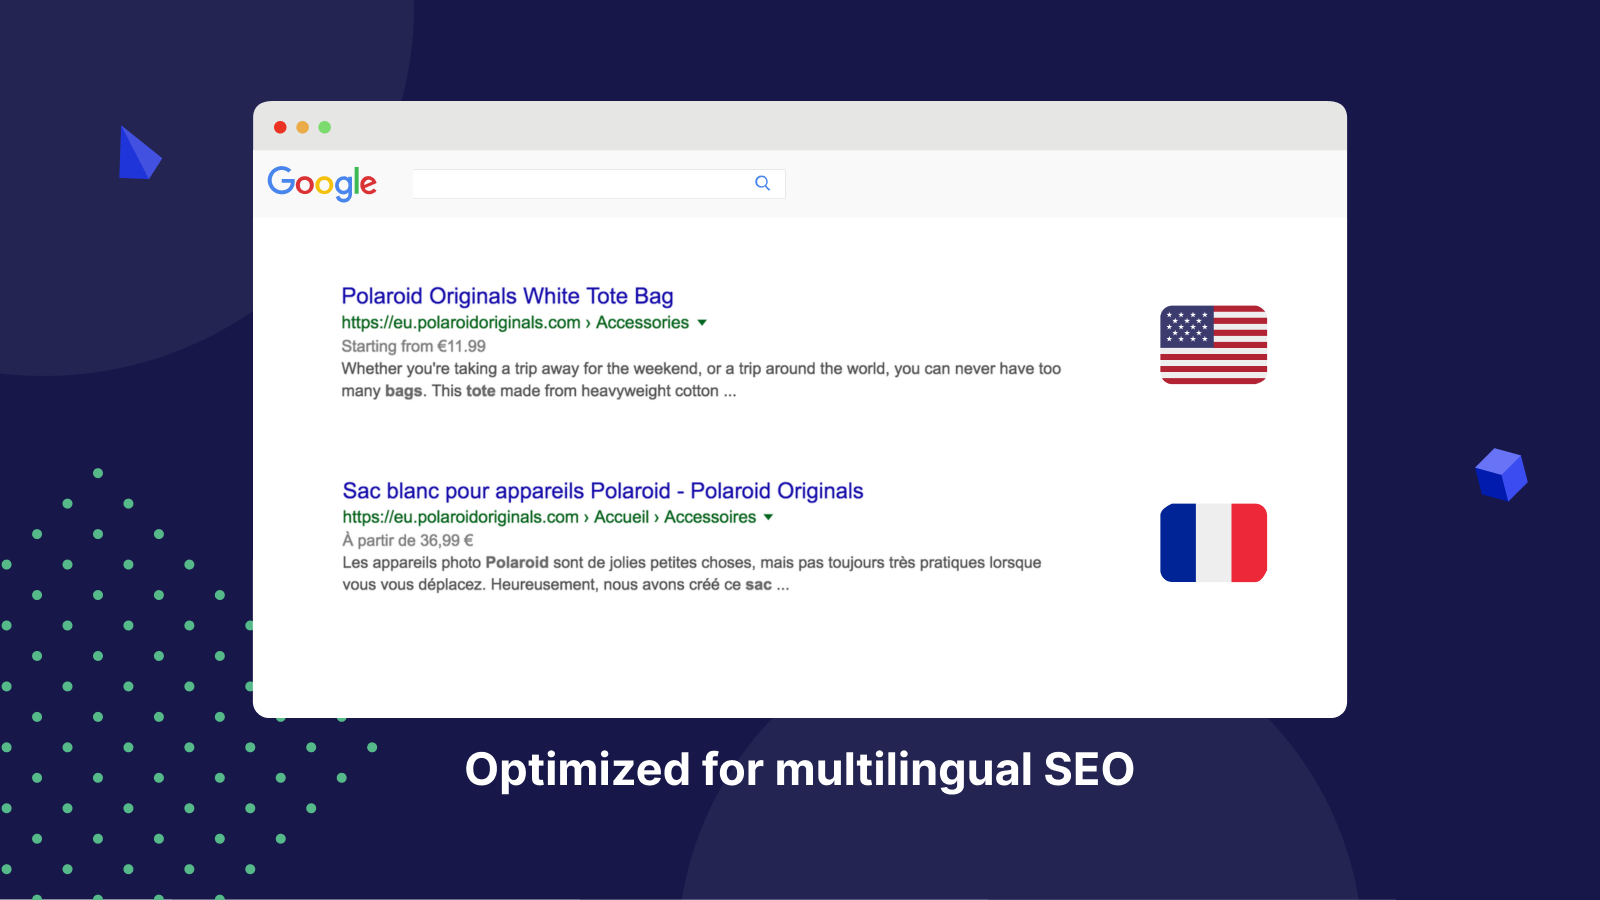 SEO visibility in both languages